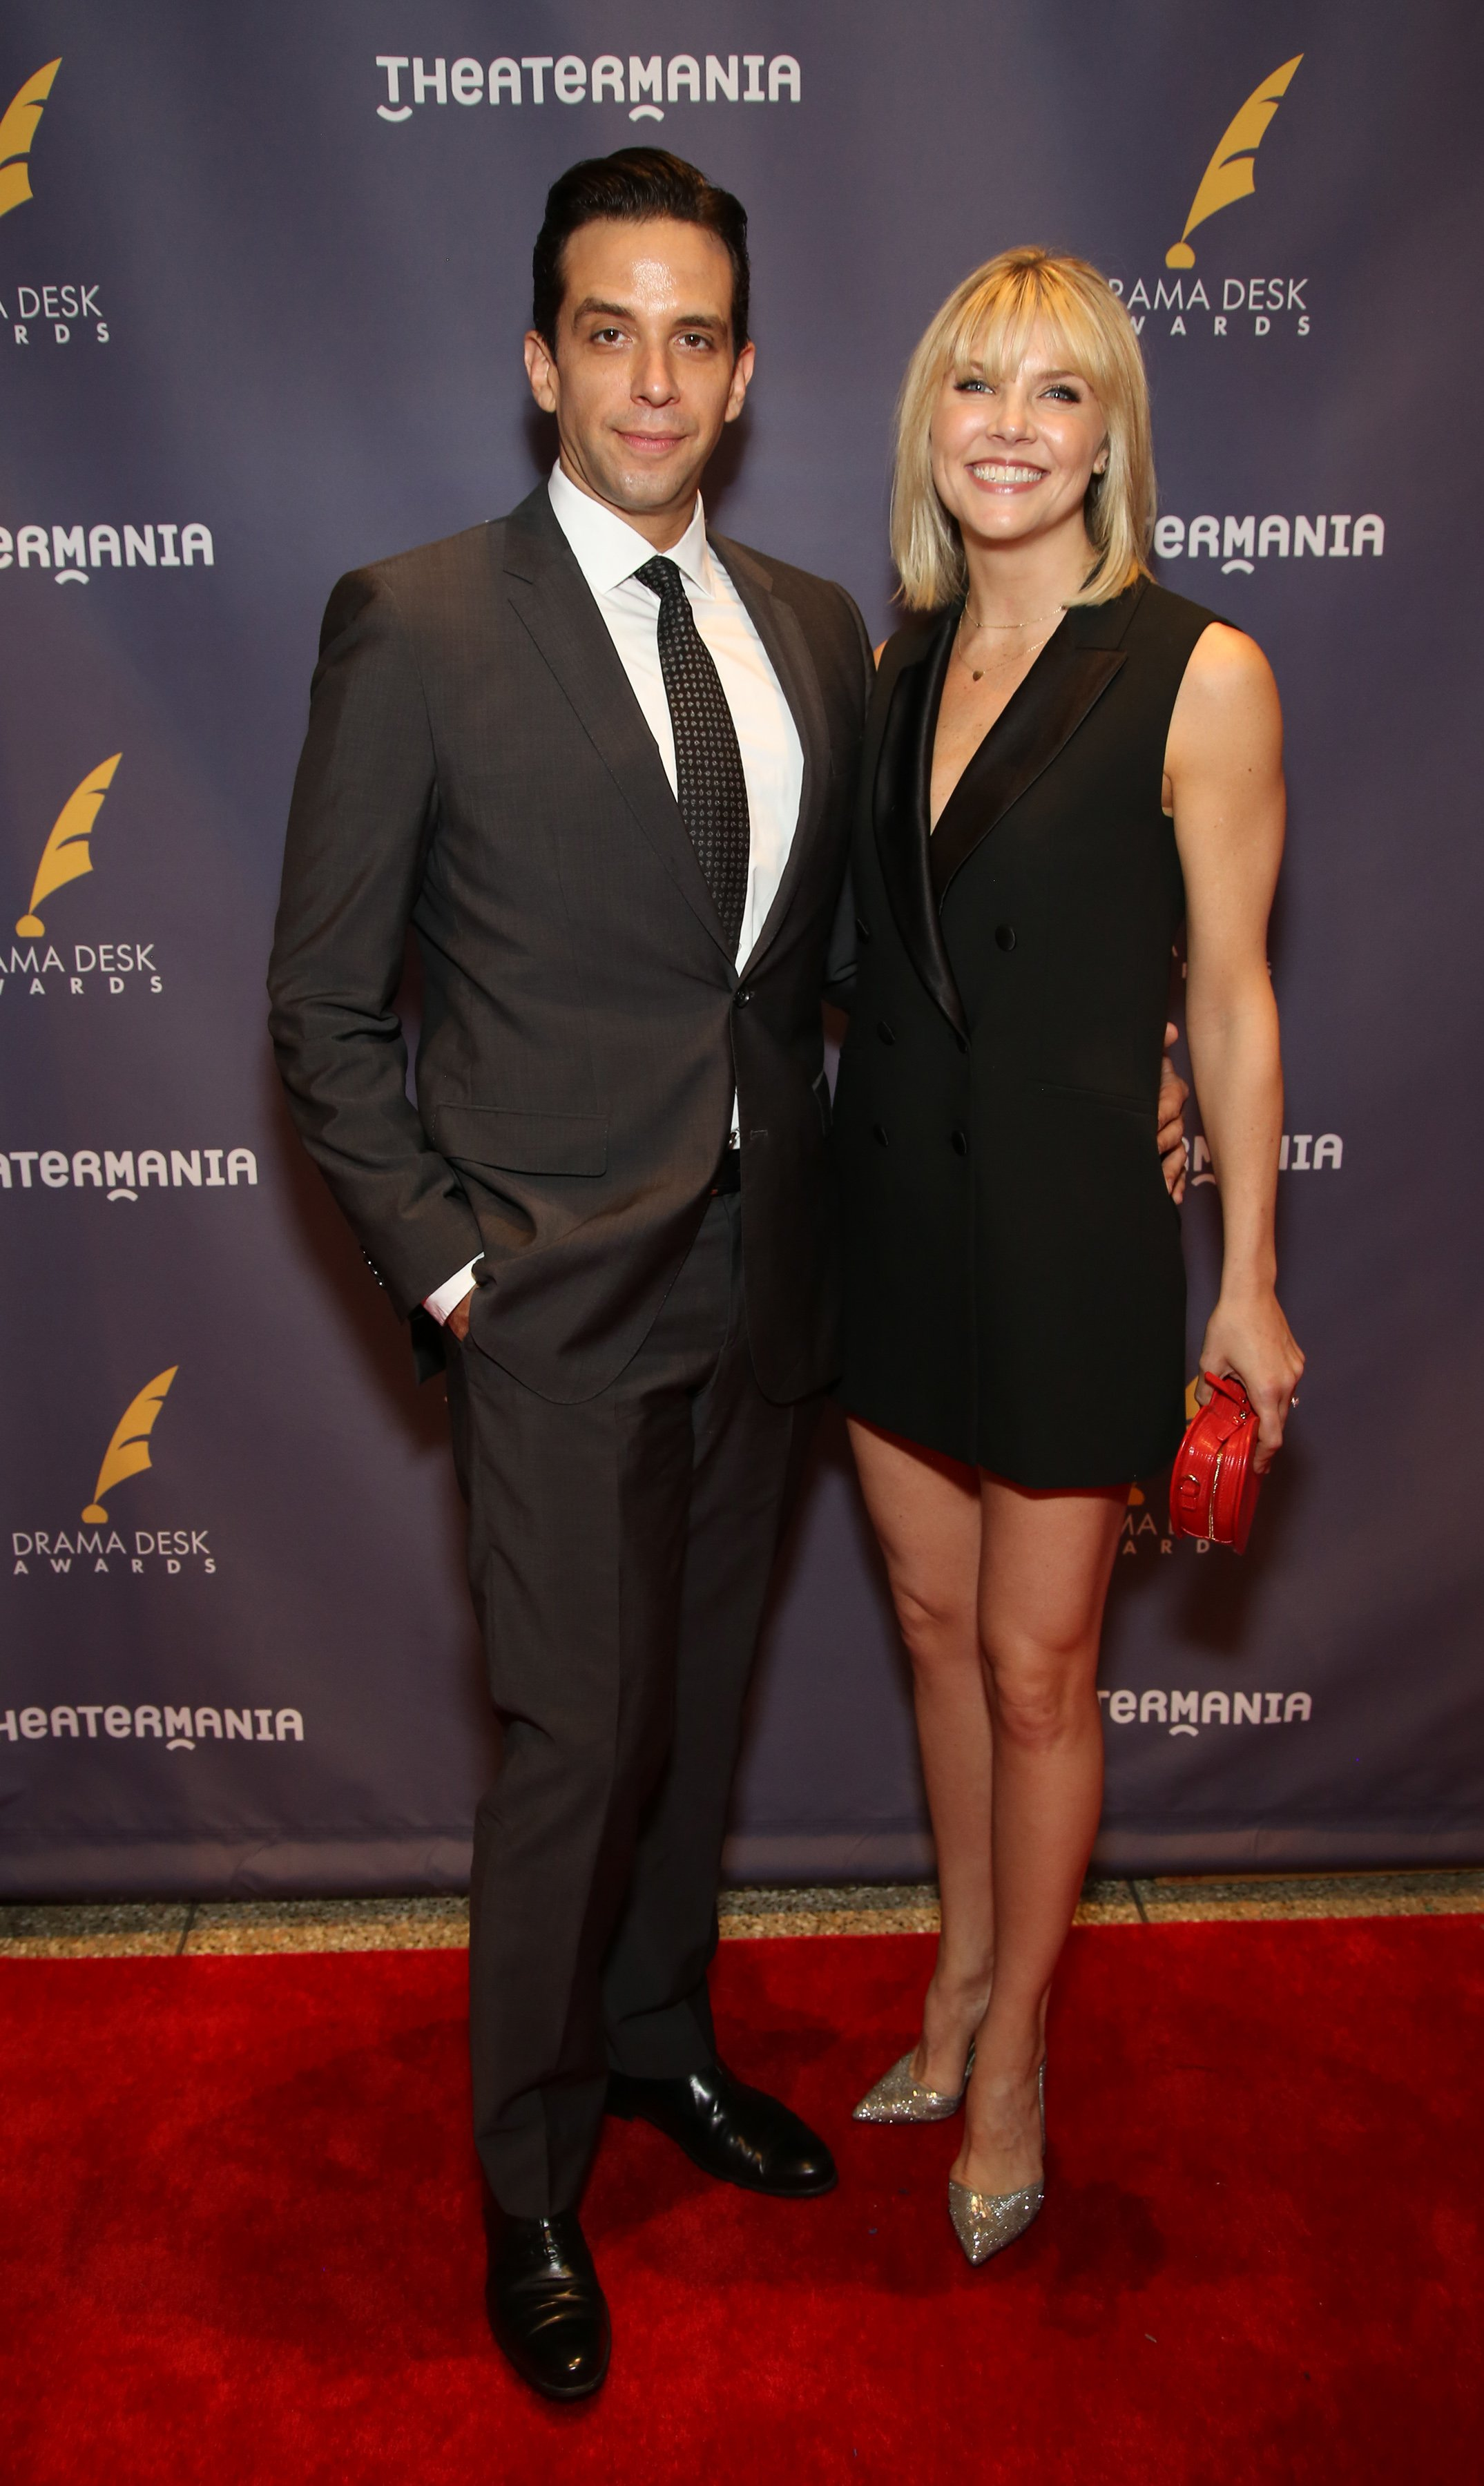 Nick Cordero and Amanda Kloots attend the 2017 Drama Desk Awards at Town Hall on June 4, 2017 in New York City | Photo: Getty Images